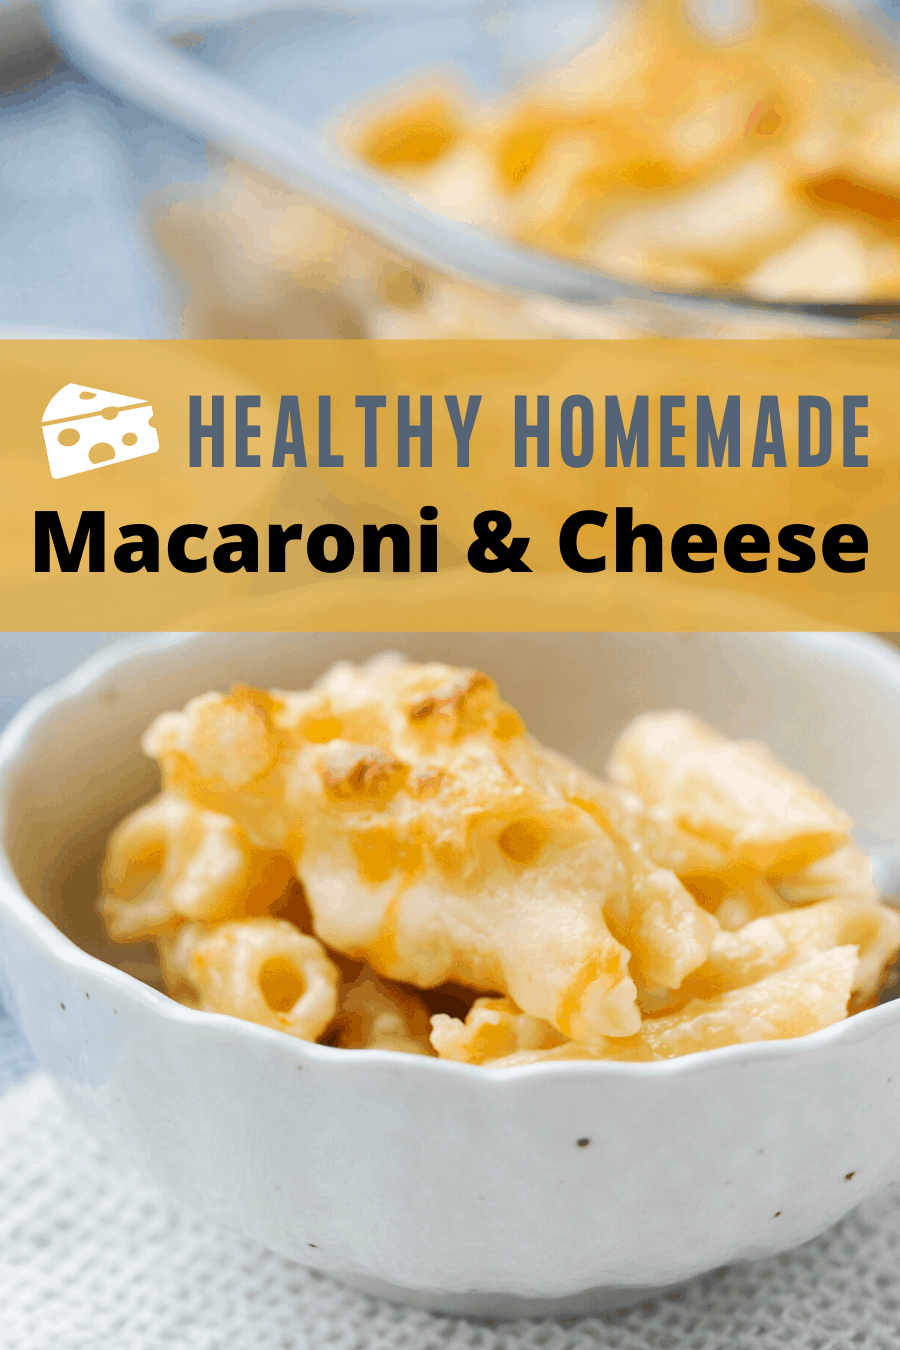 Pinterest pin for homemade macaroni and cheese with an up-close shot of a bowl of macaroni and cheese.